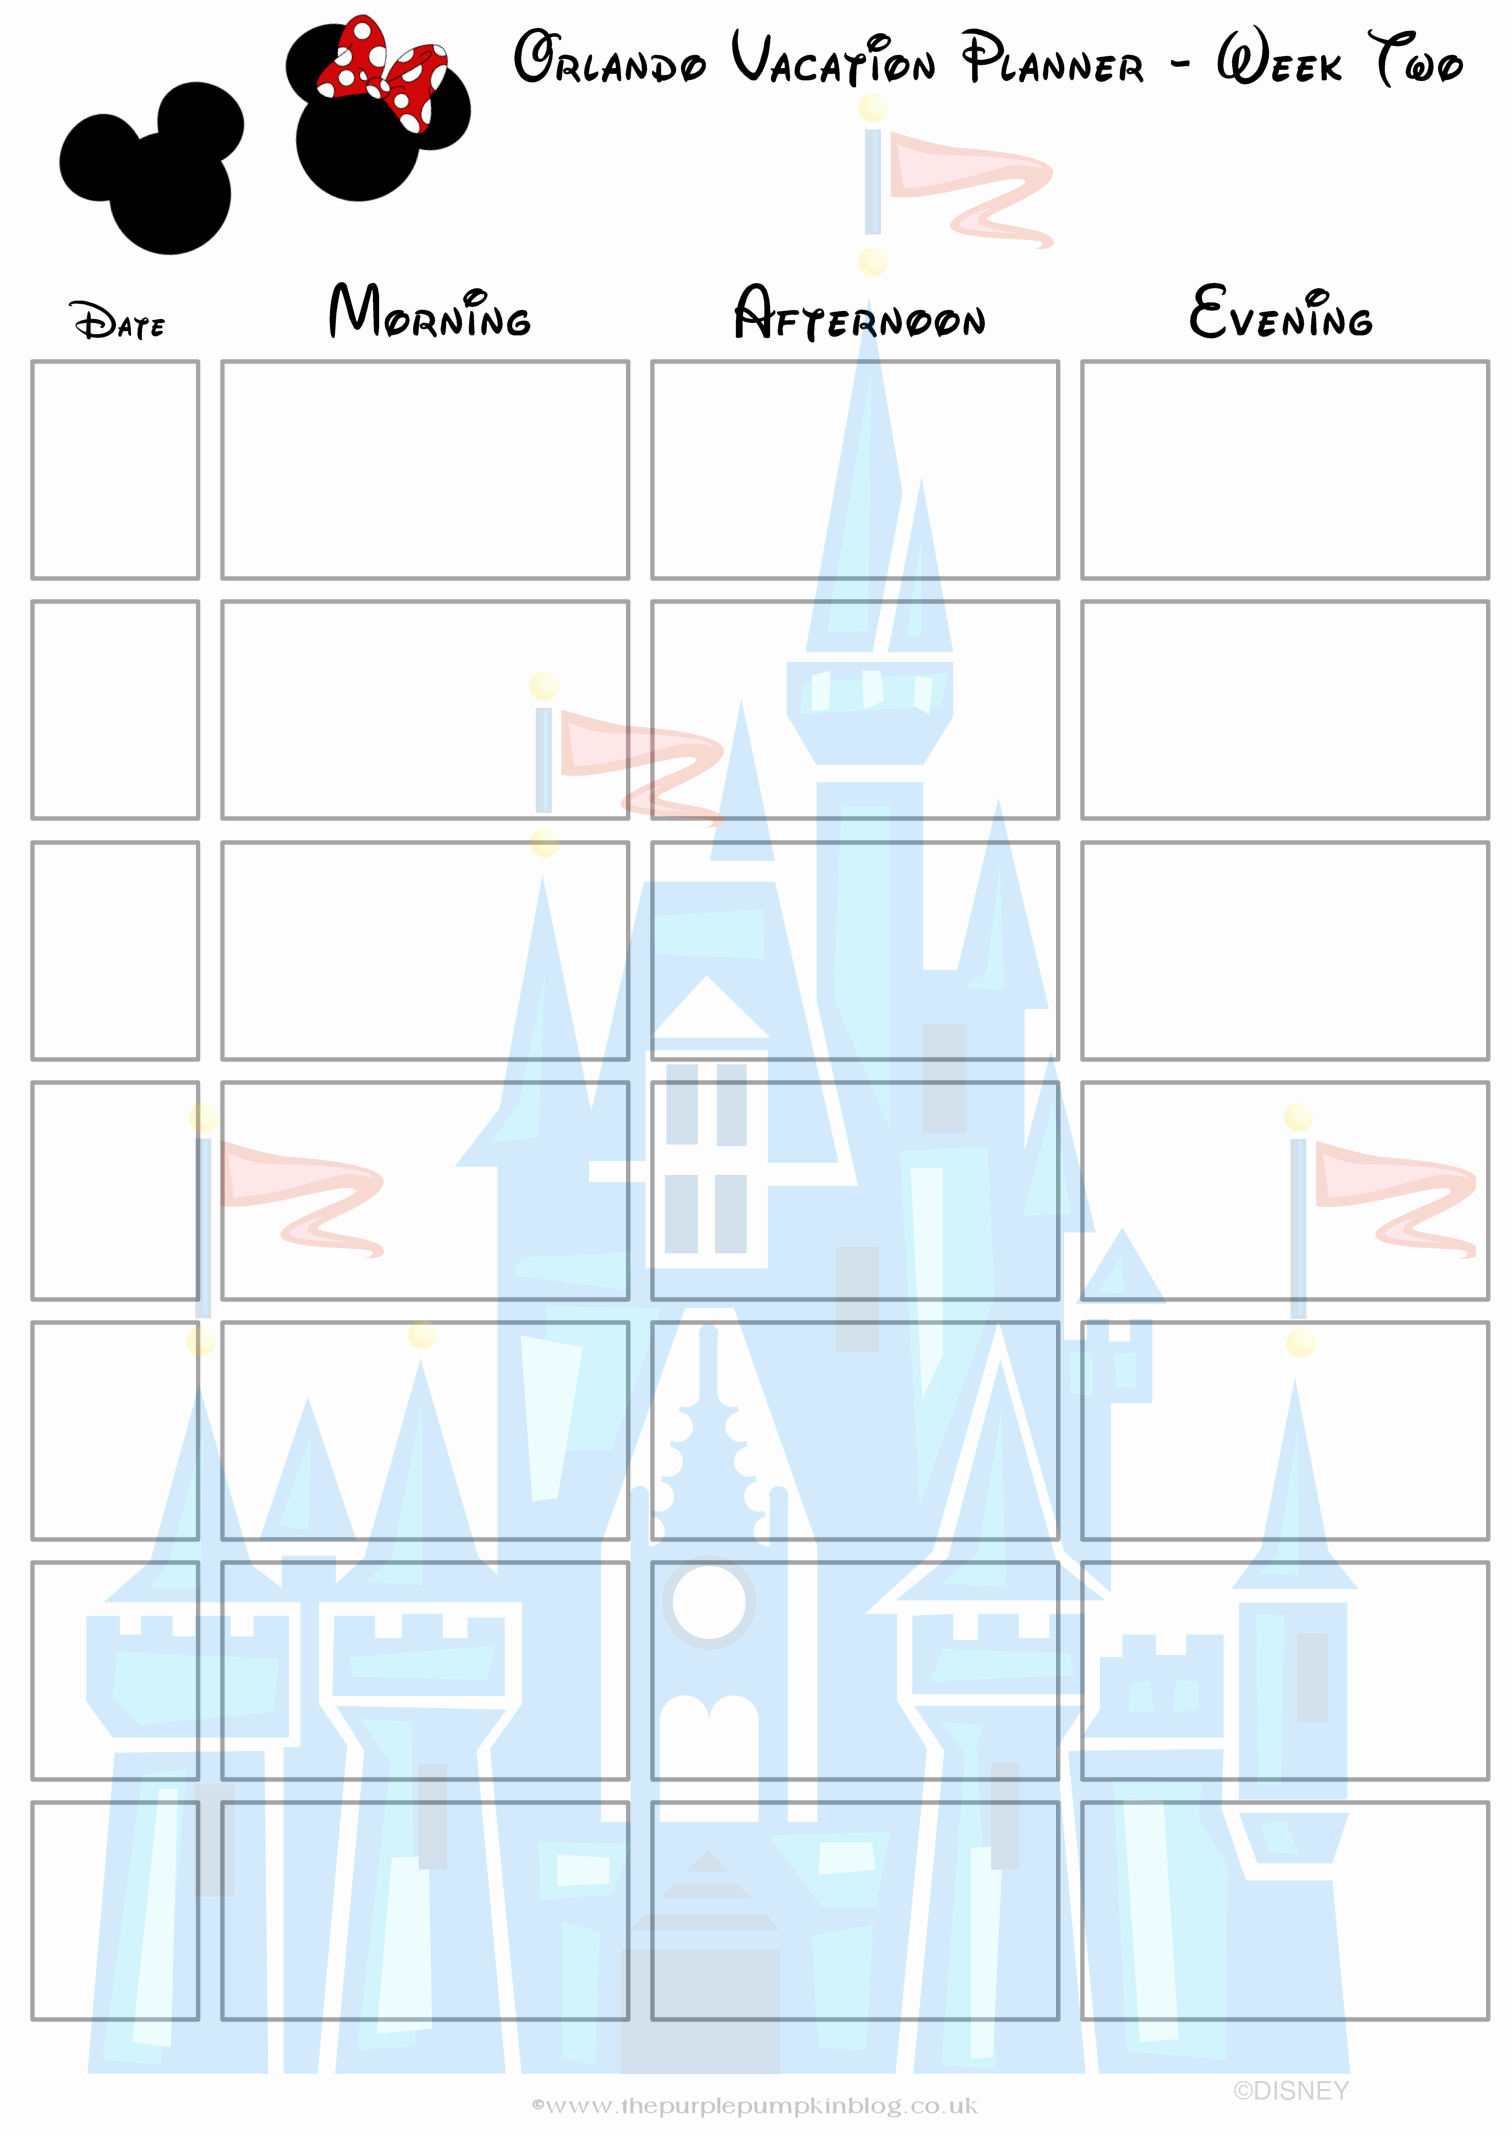 2 Week Calendar Printable Inspirational orlando Walt Disney World Vacation Planner